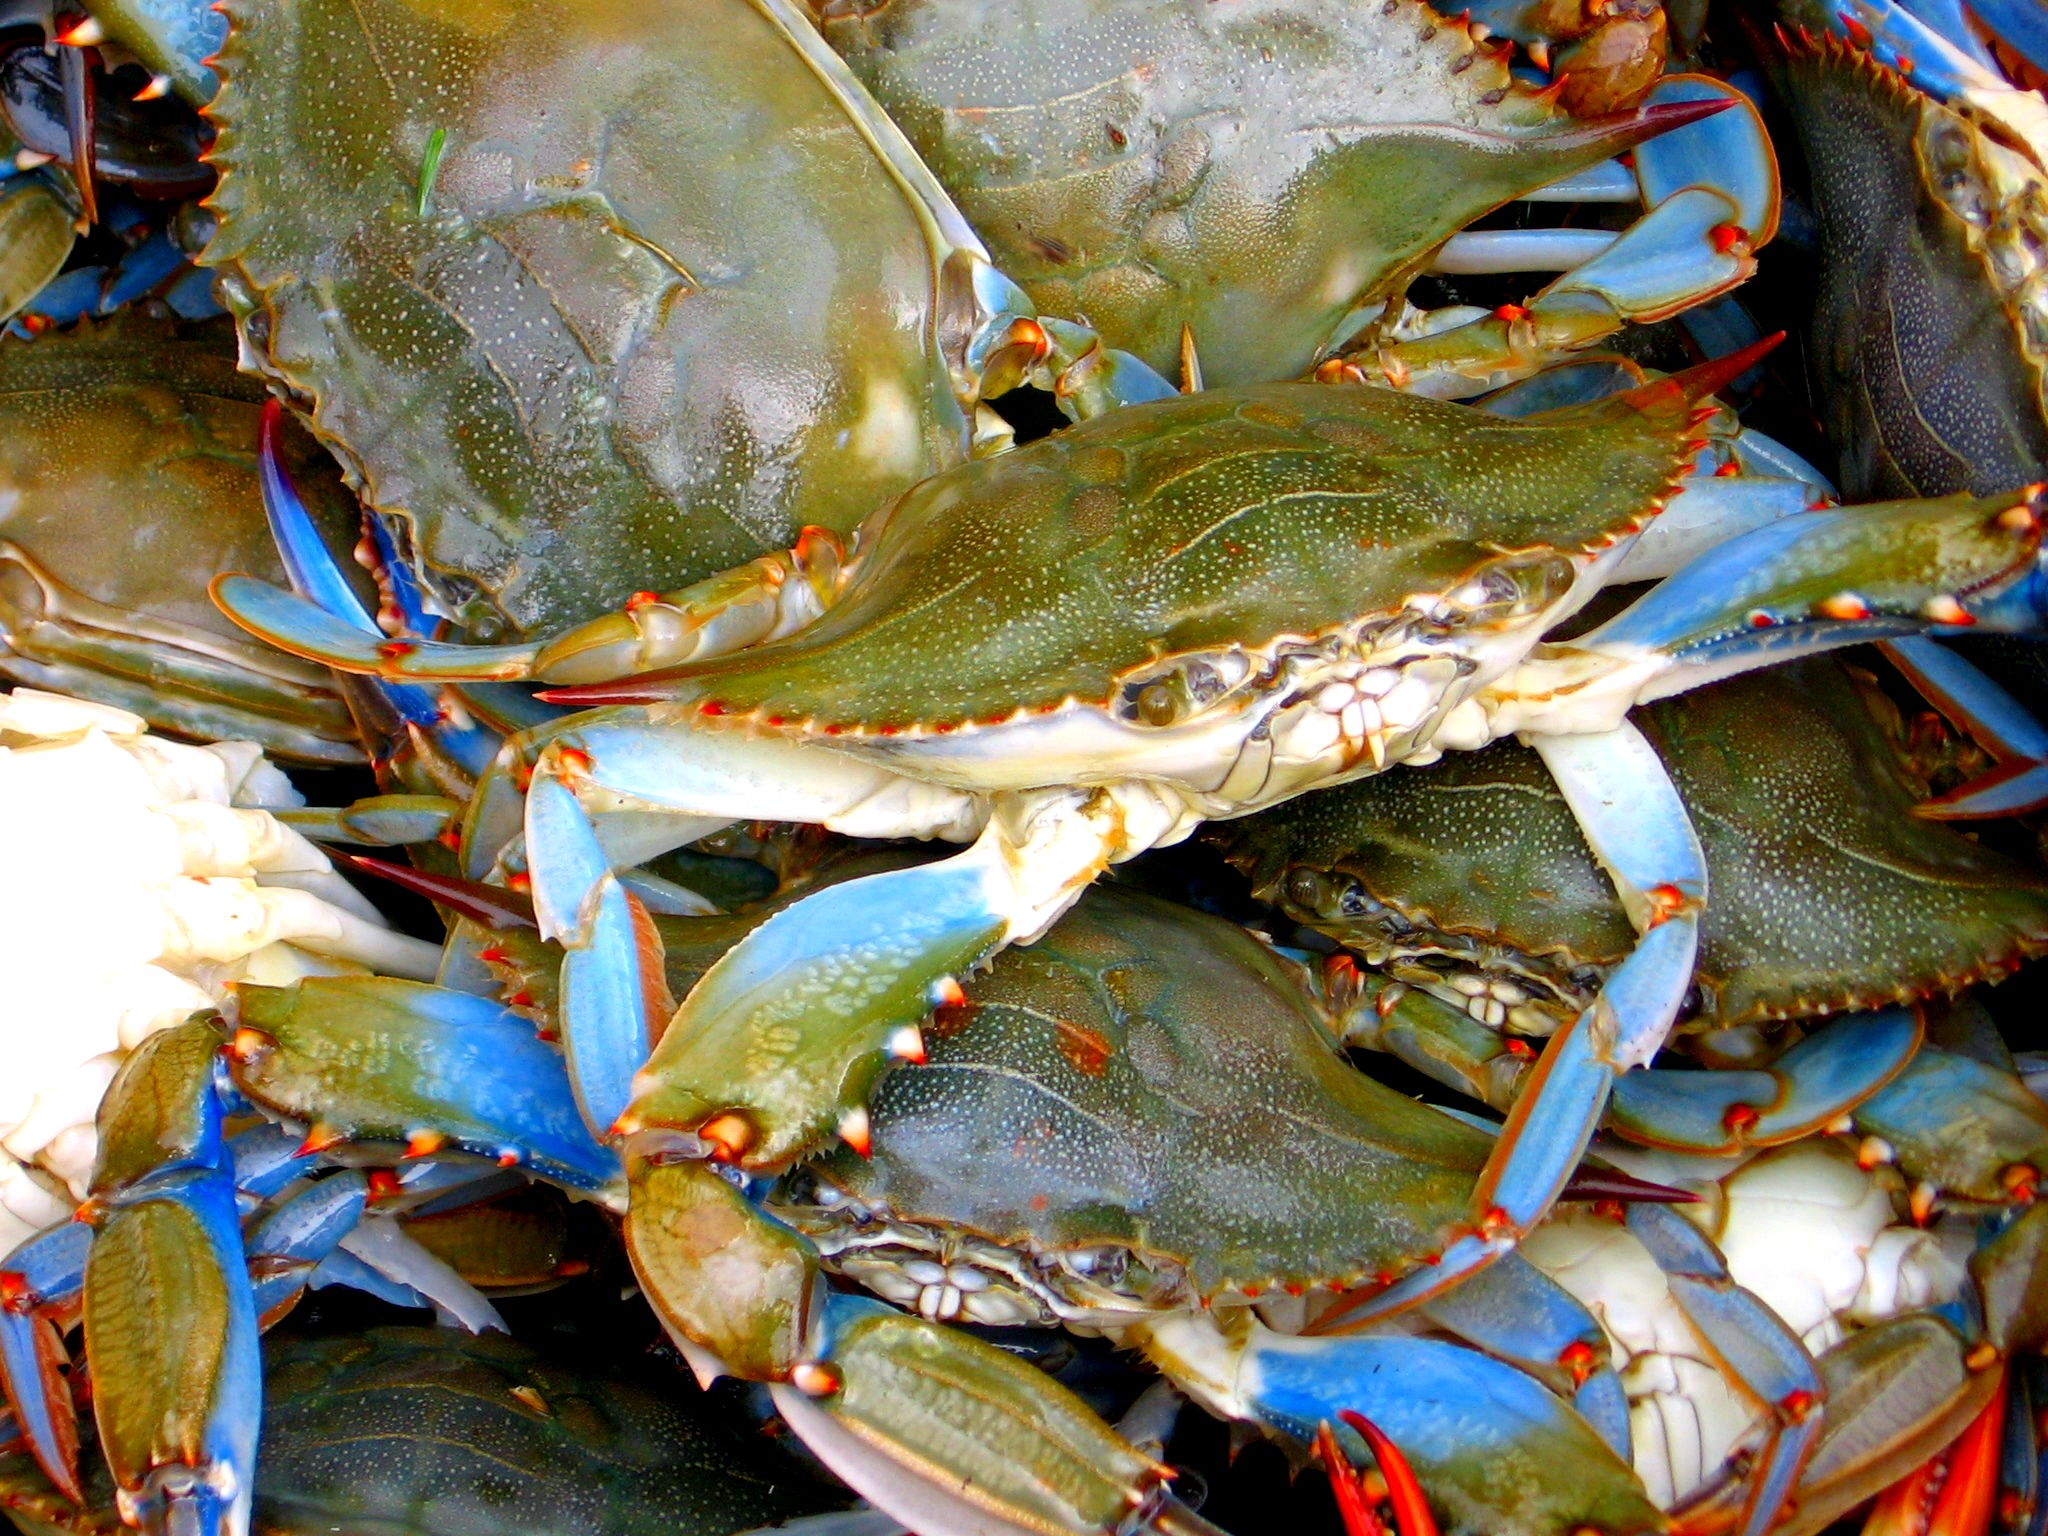 Crabbing Places In Long Island